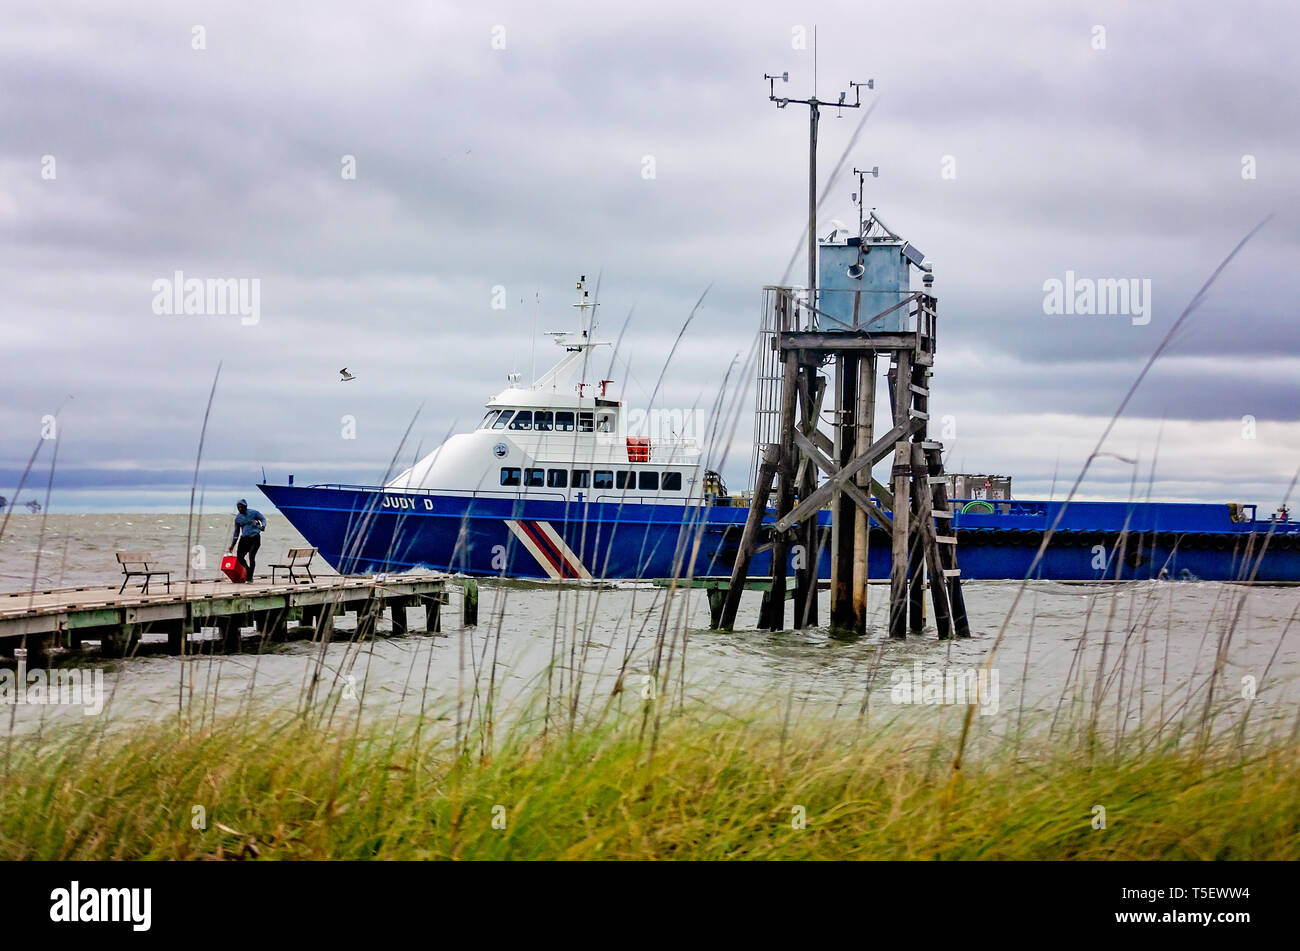 Judy D An Offshore Supply Ship Passes The Public Boat Launch And Noaa National Data Buoy Weather Tower In Dauphin Island Alabama Stock Photo Alamy